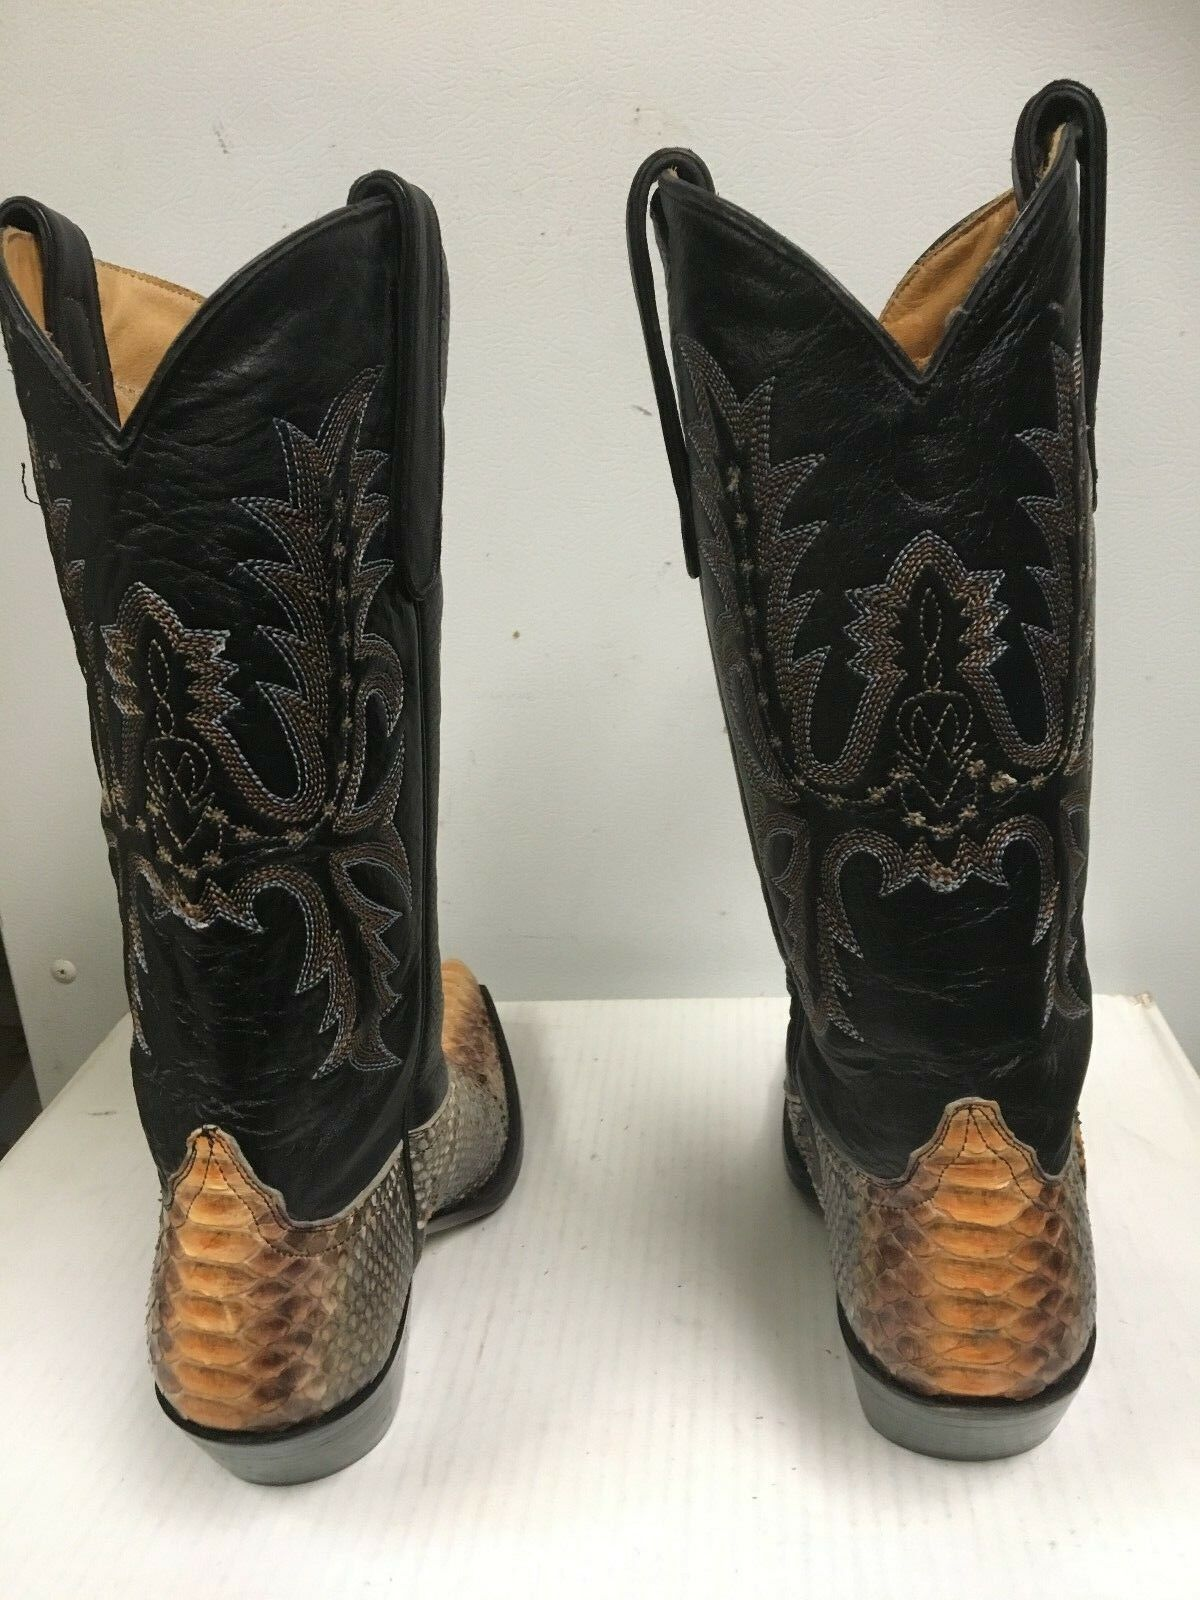 Star Boots Women's Exotic Snake Skin Python Leather    W9208 Size US 7 B NEW 9c7838